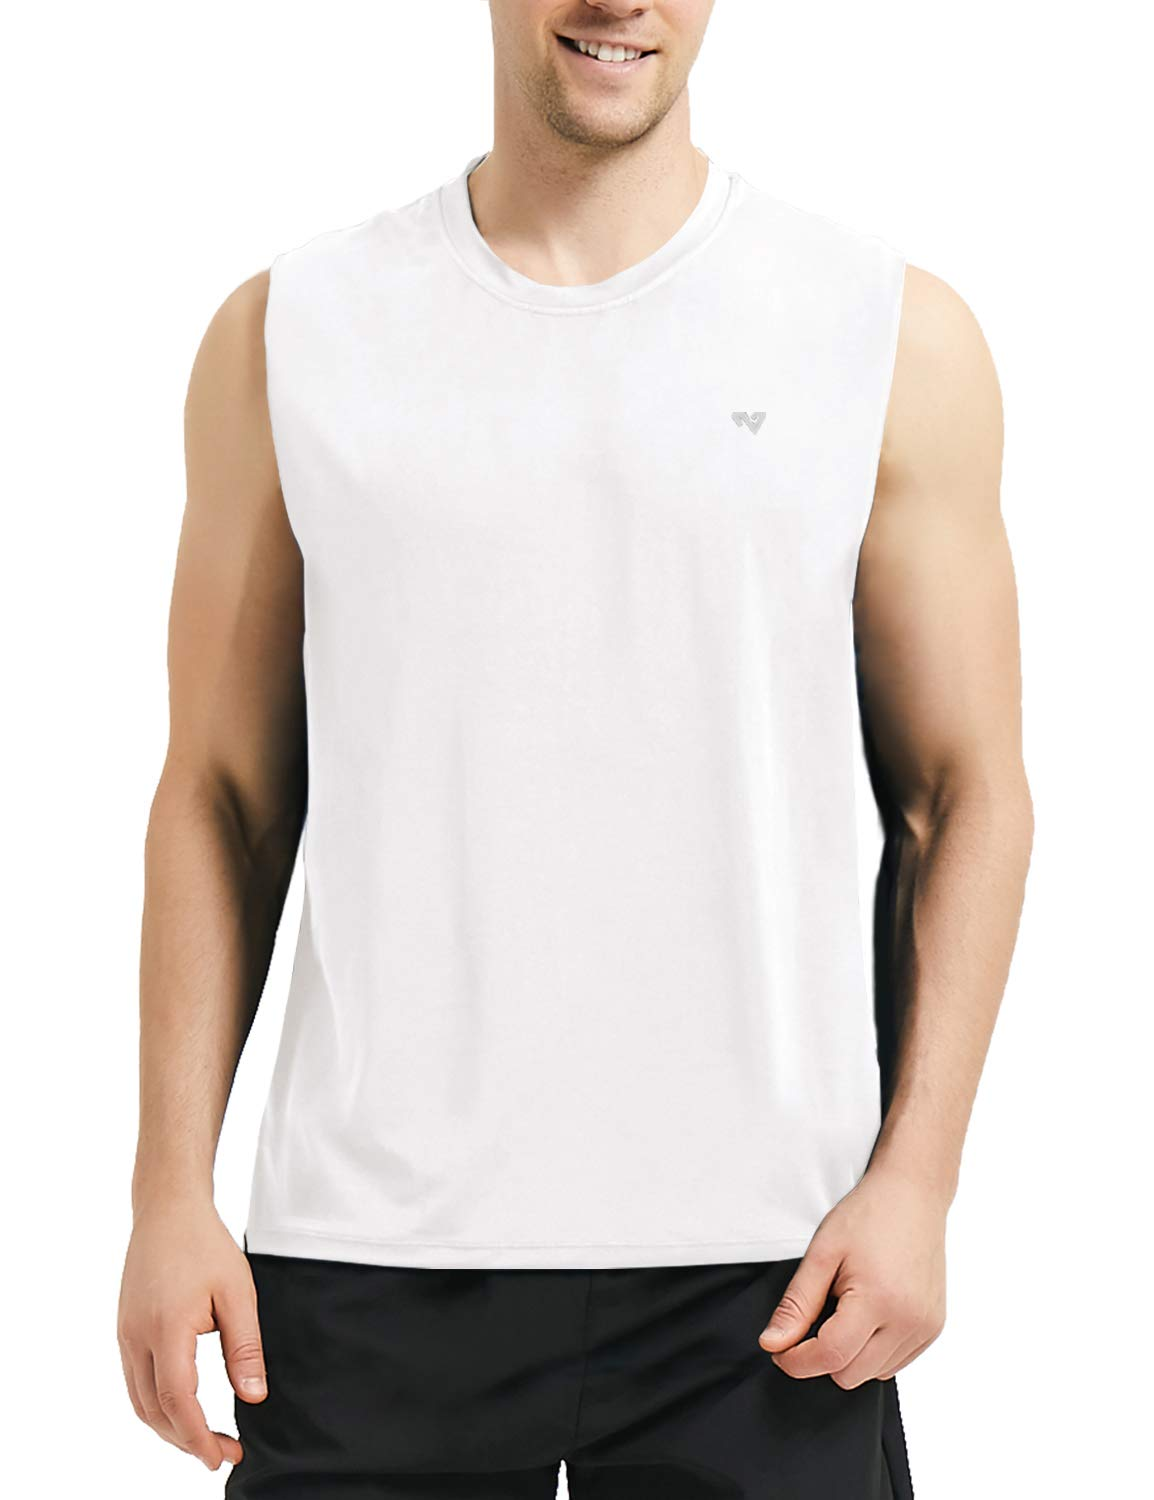 Roadbox Men's Performance Sleeveless Workout Muscle Bodybuilding Tank Tops Shirts White by Roadbox